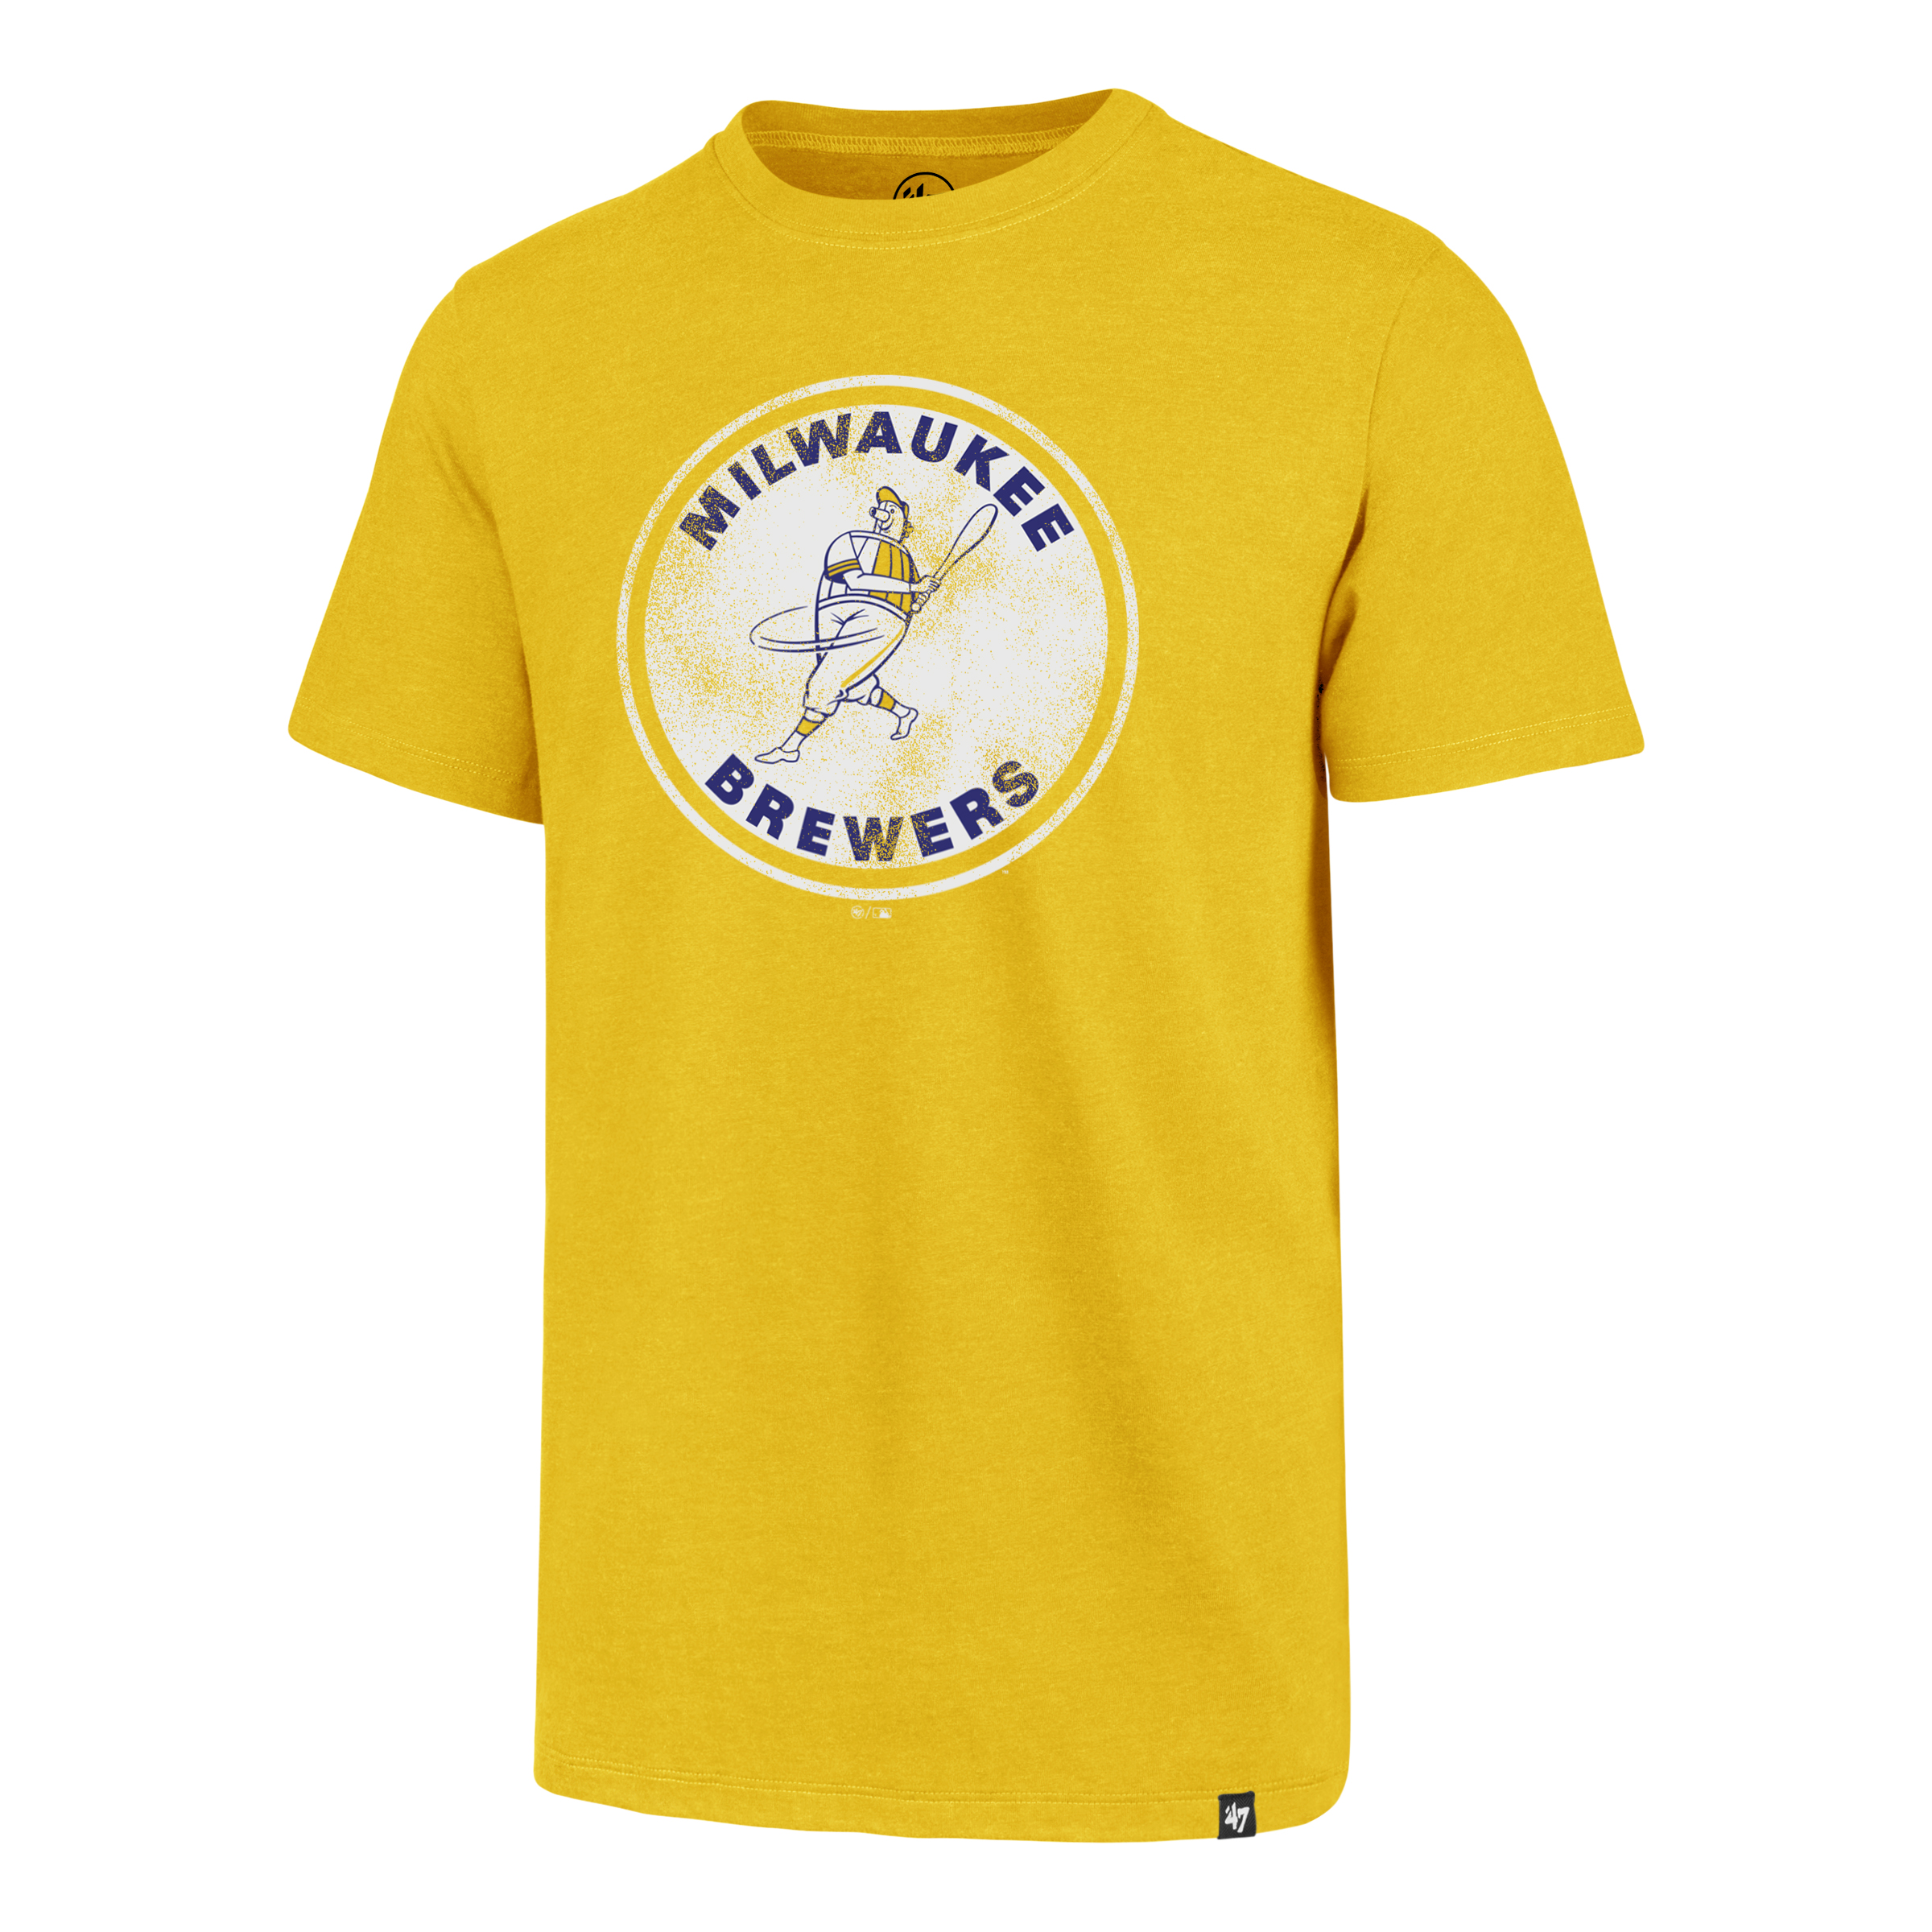 MILWAUKEE BREWERS COOPERSTOWN, Gold, Yellow, swatch